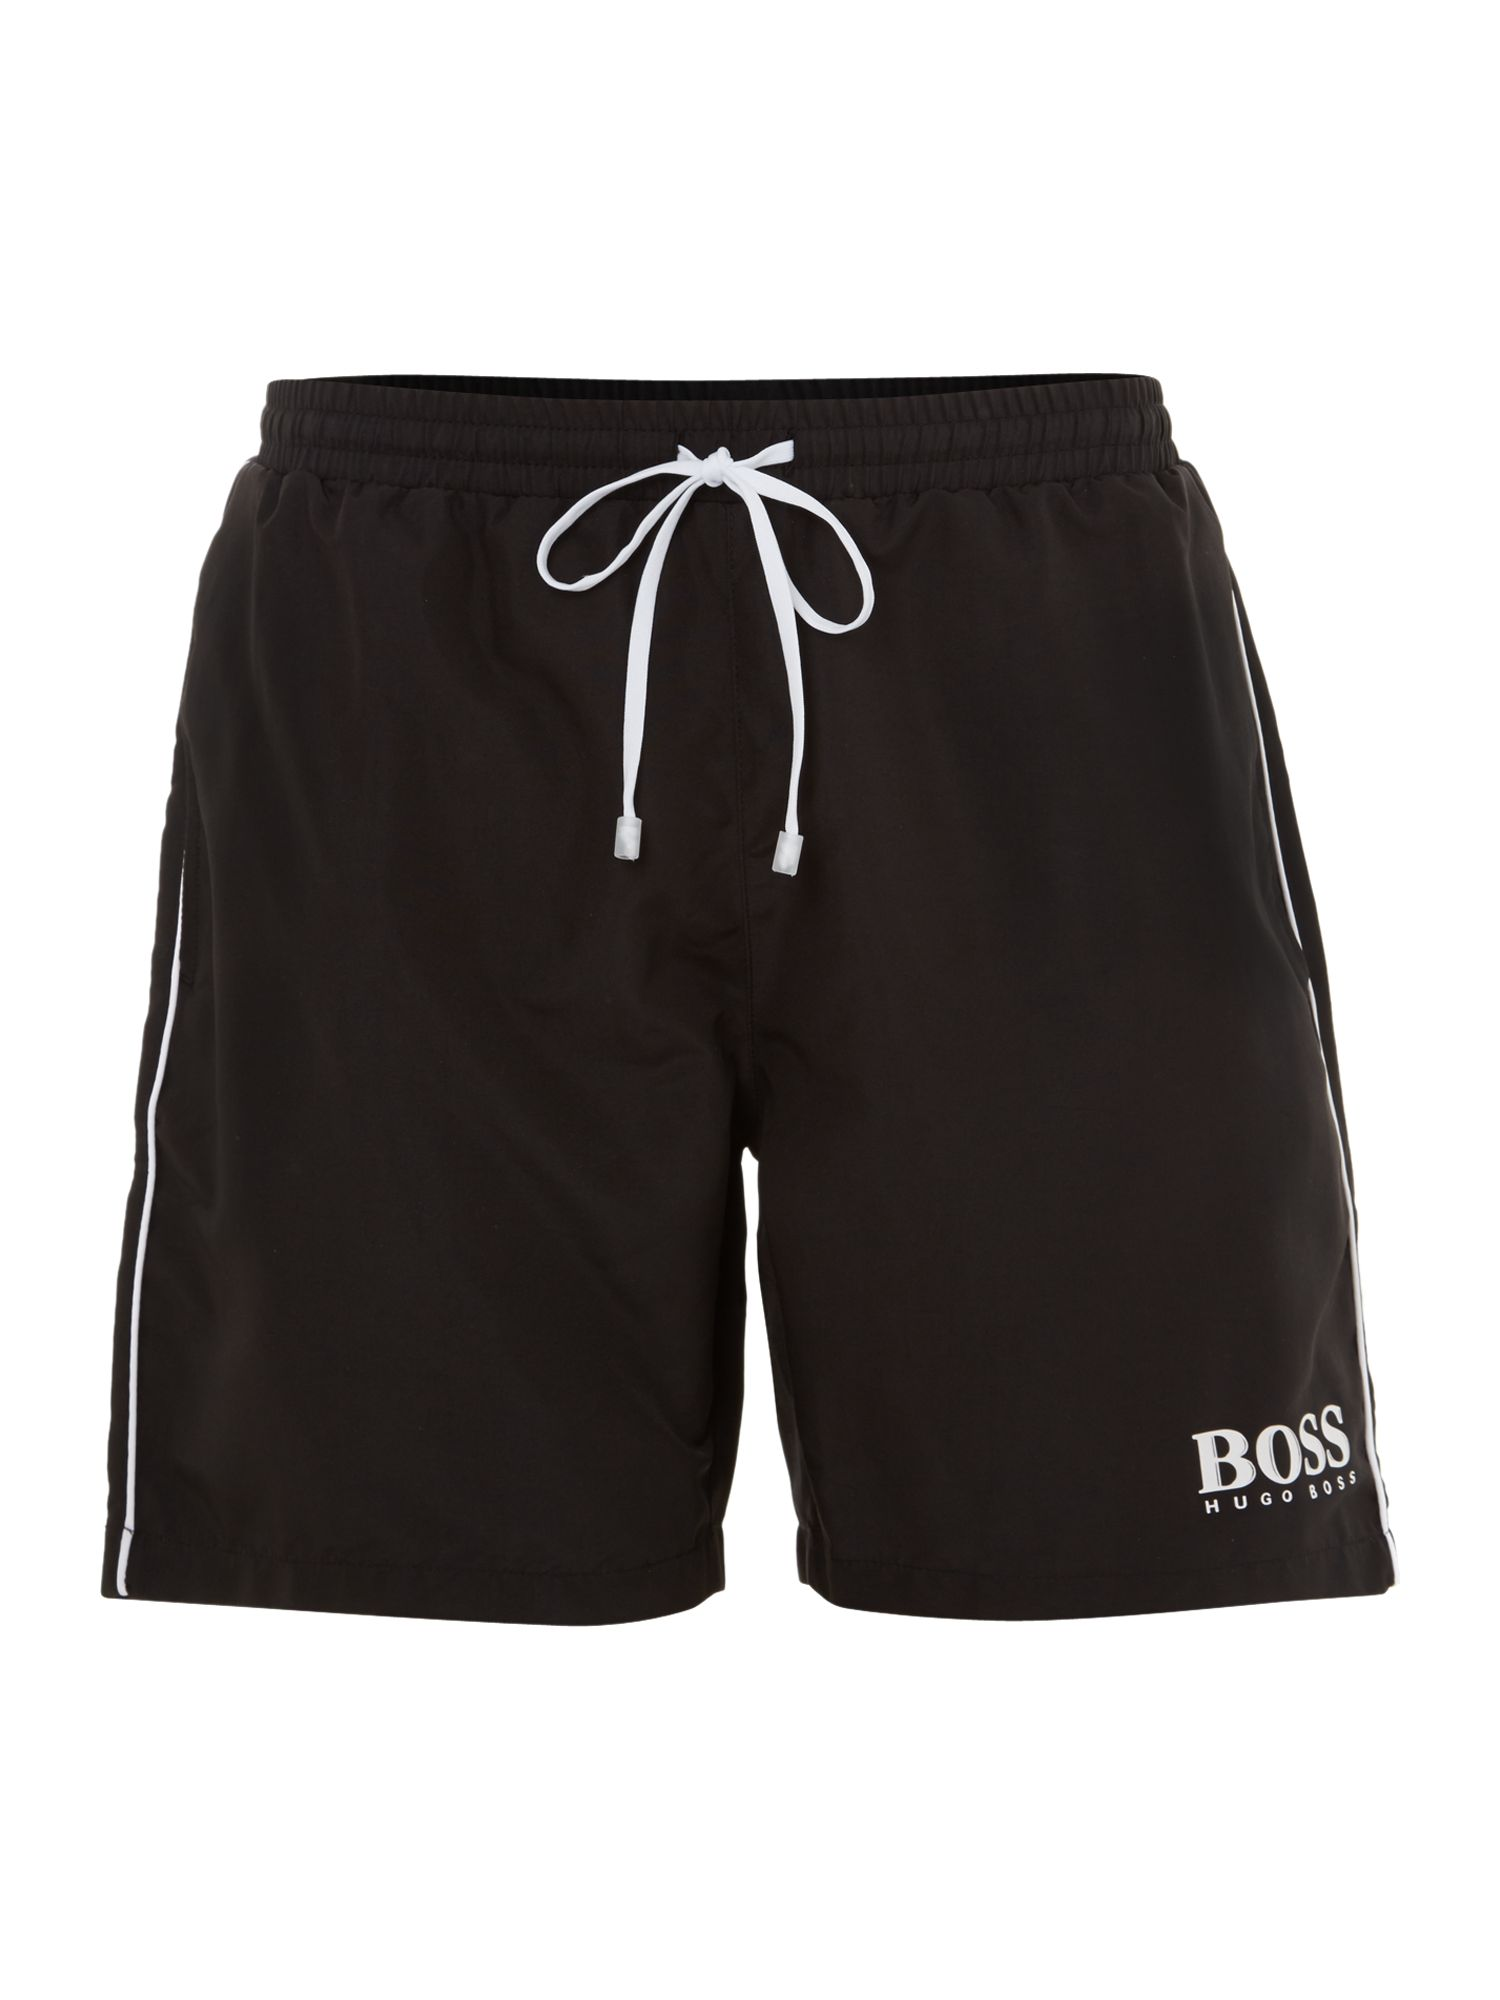 Men's Hugo Boss Classic swim shorts, Black